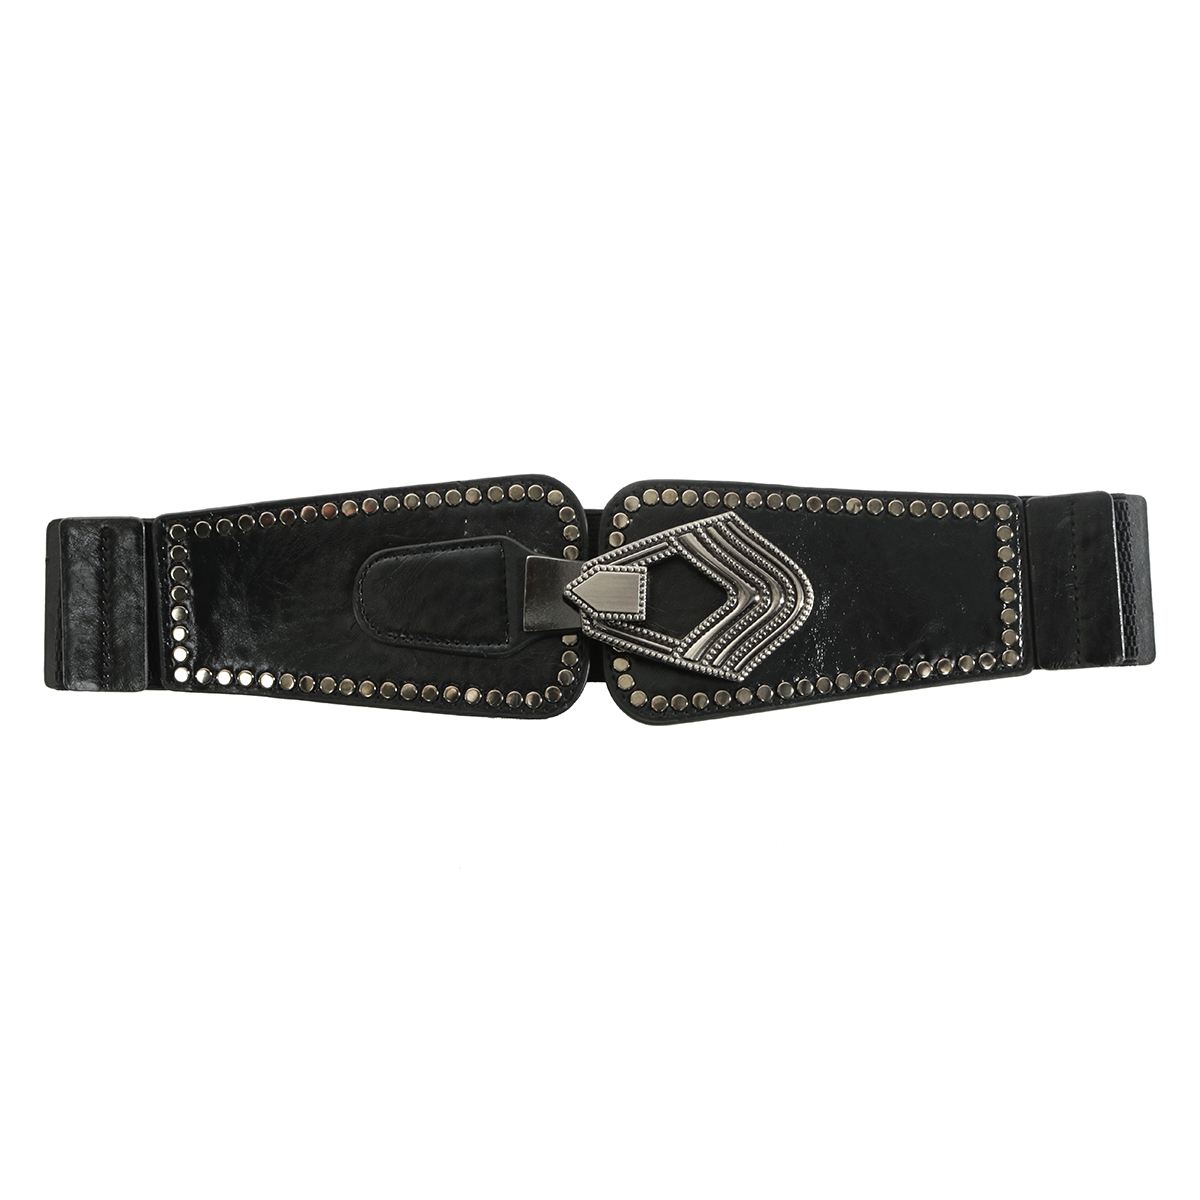 "BLK 31.5"" RIVET BELT"